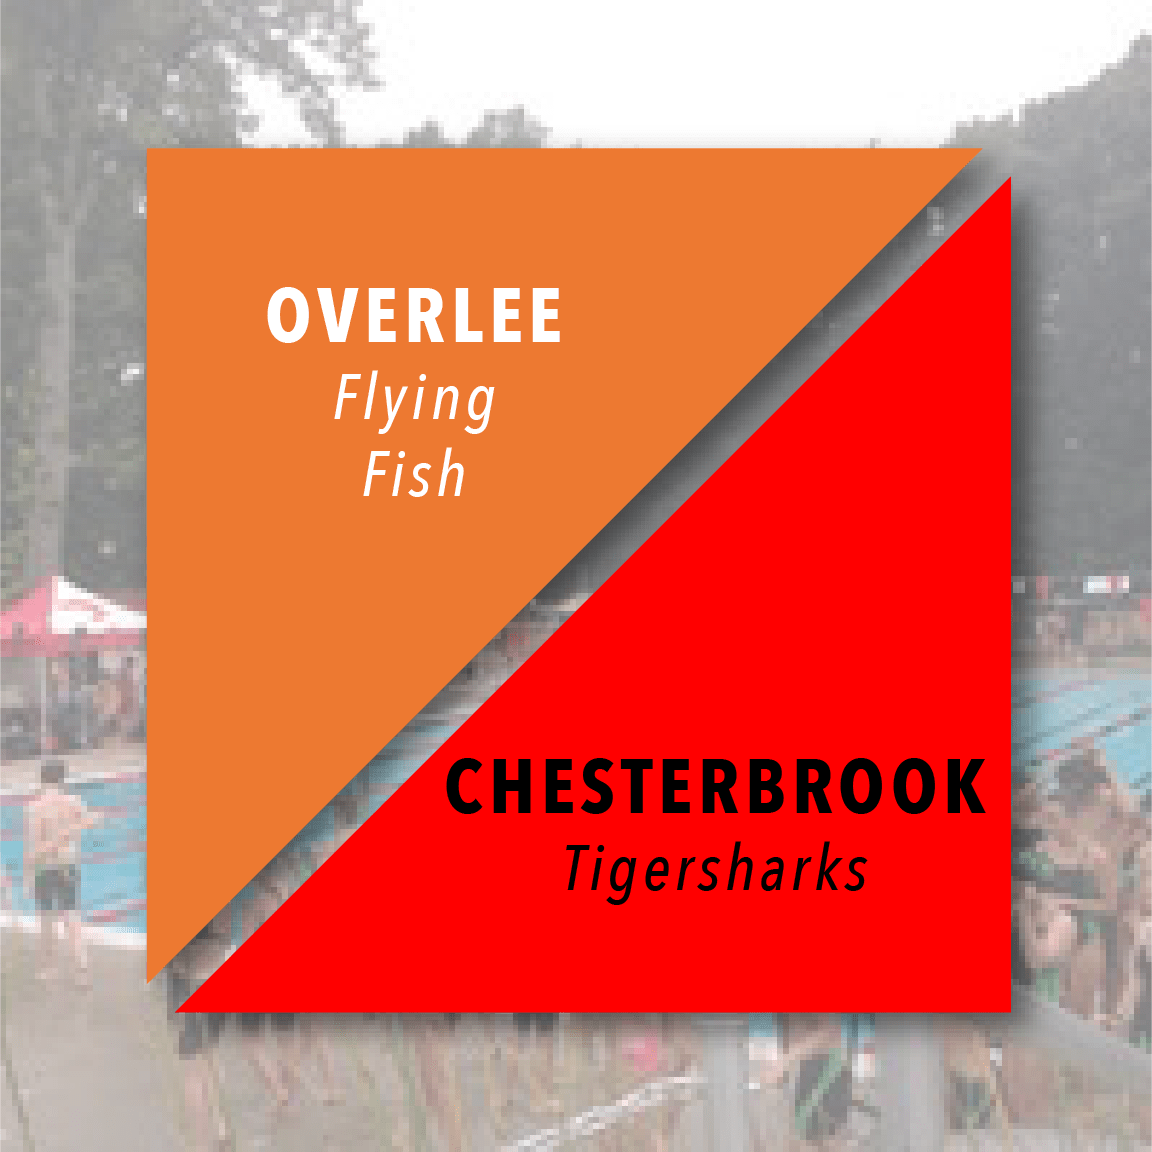 Wk 5 Meet of the Week Preview: Overlee @ Chesterbrook